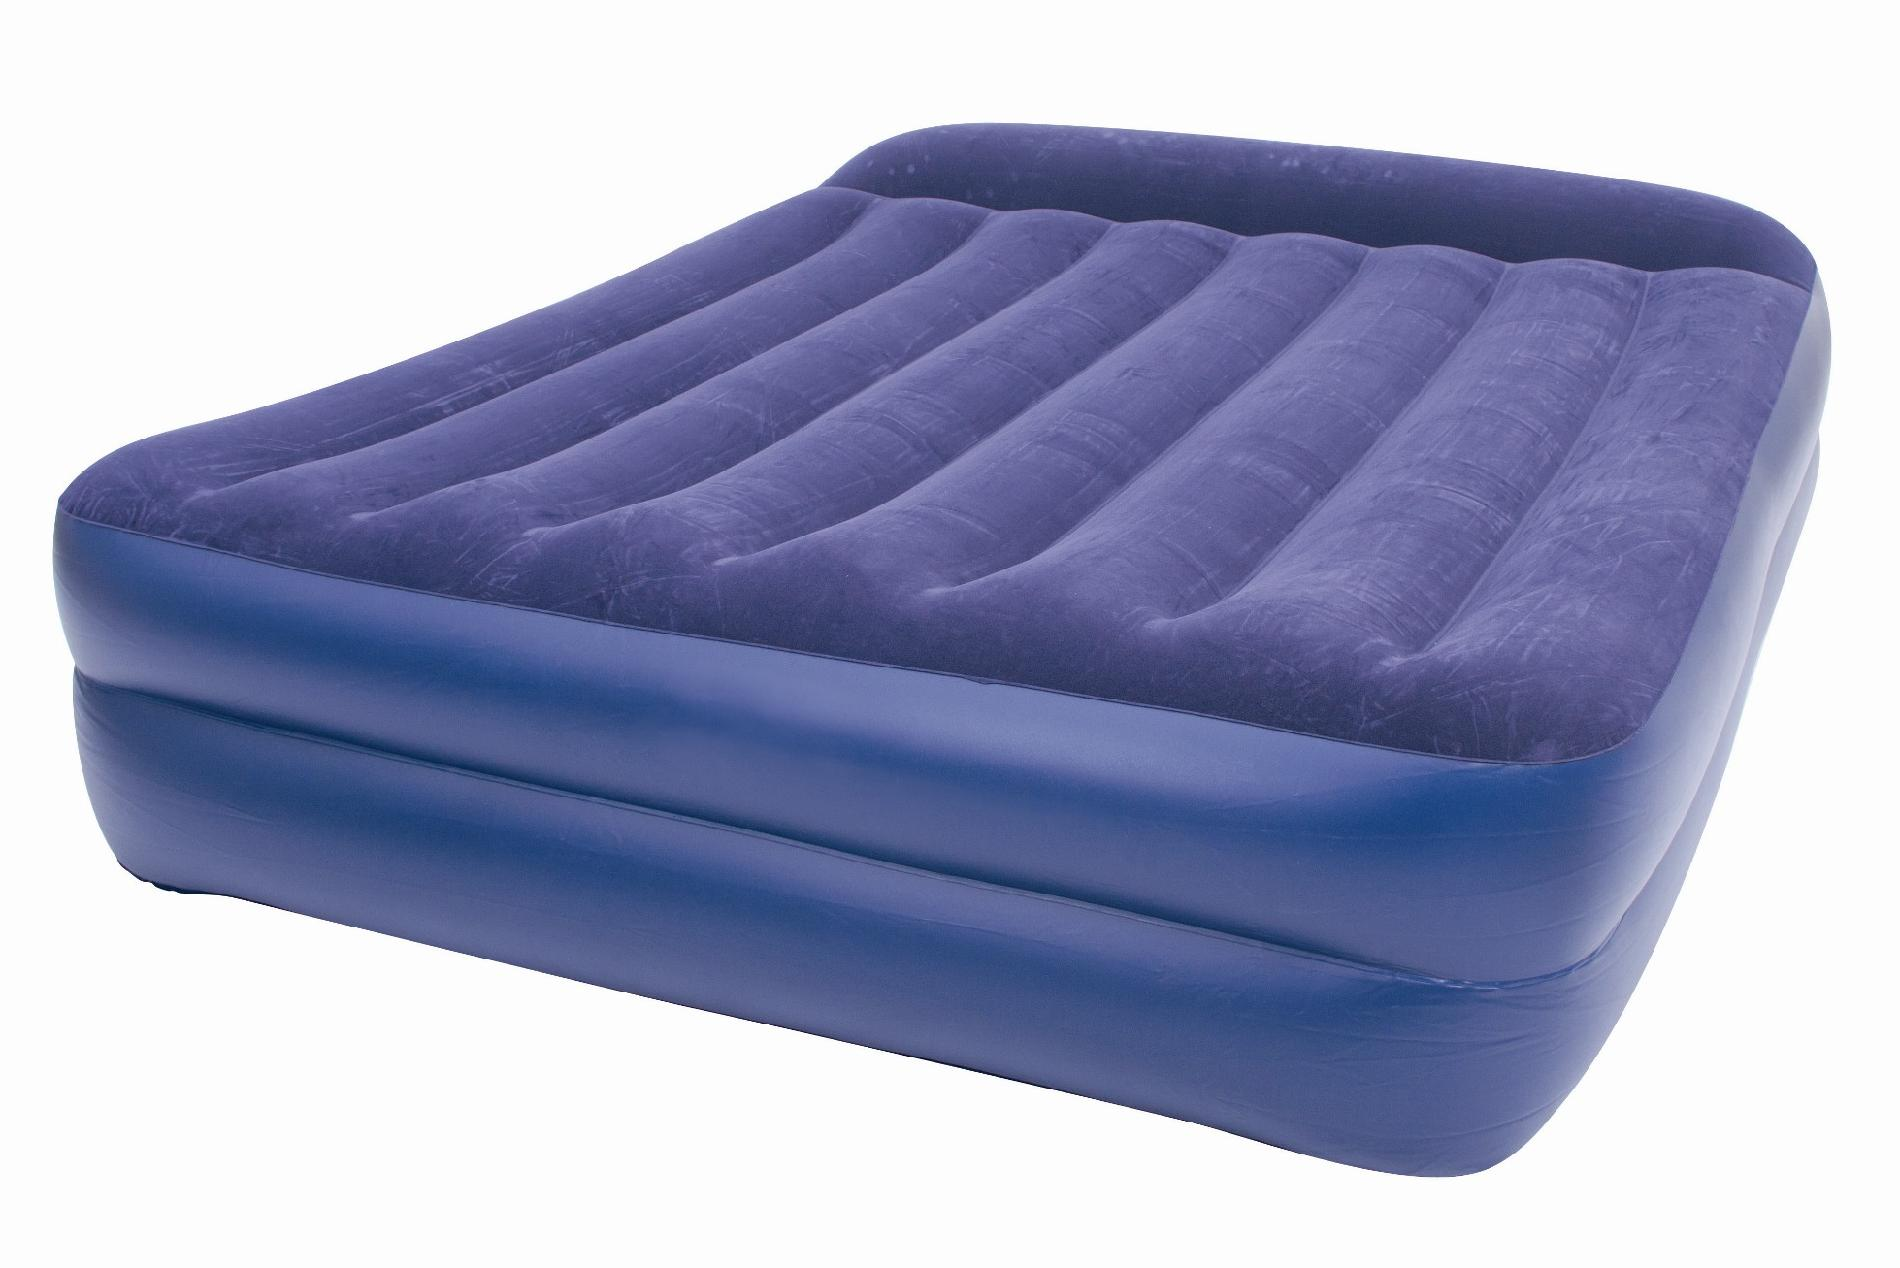 Northwest Territory Queen Raised Air Bed Free Shipping New  eBay